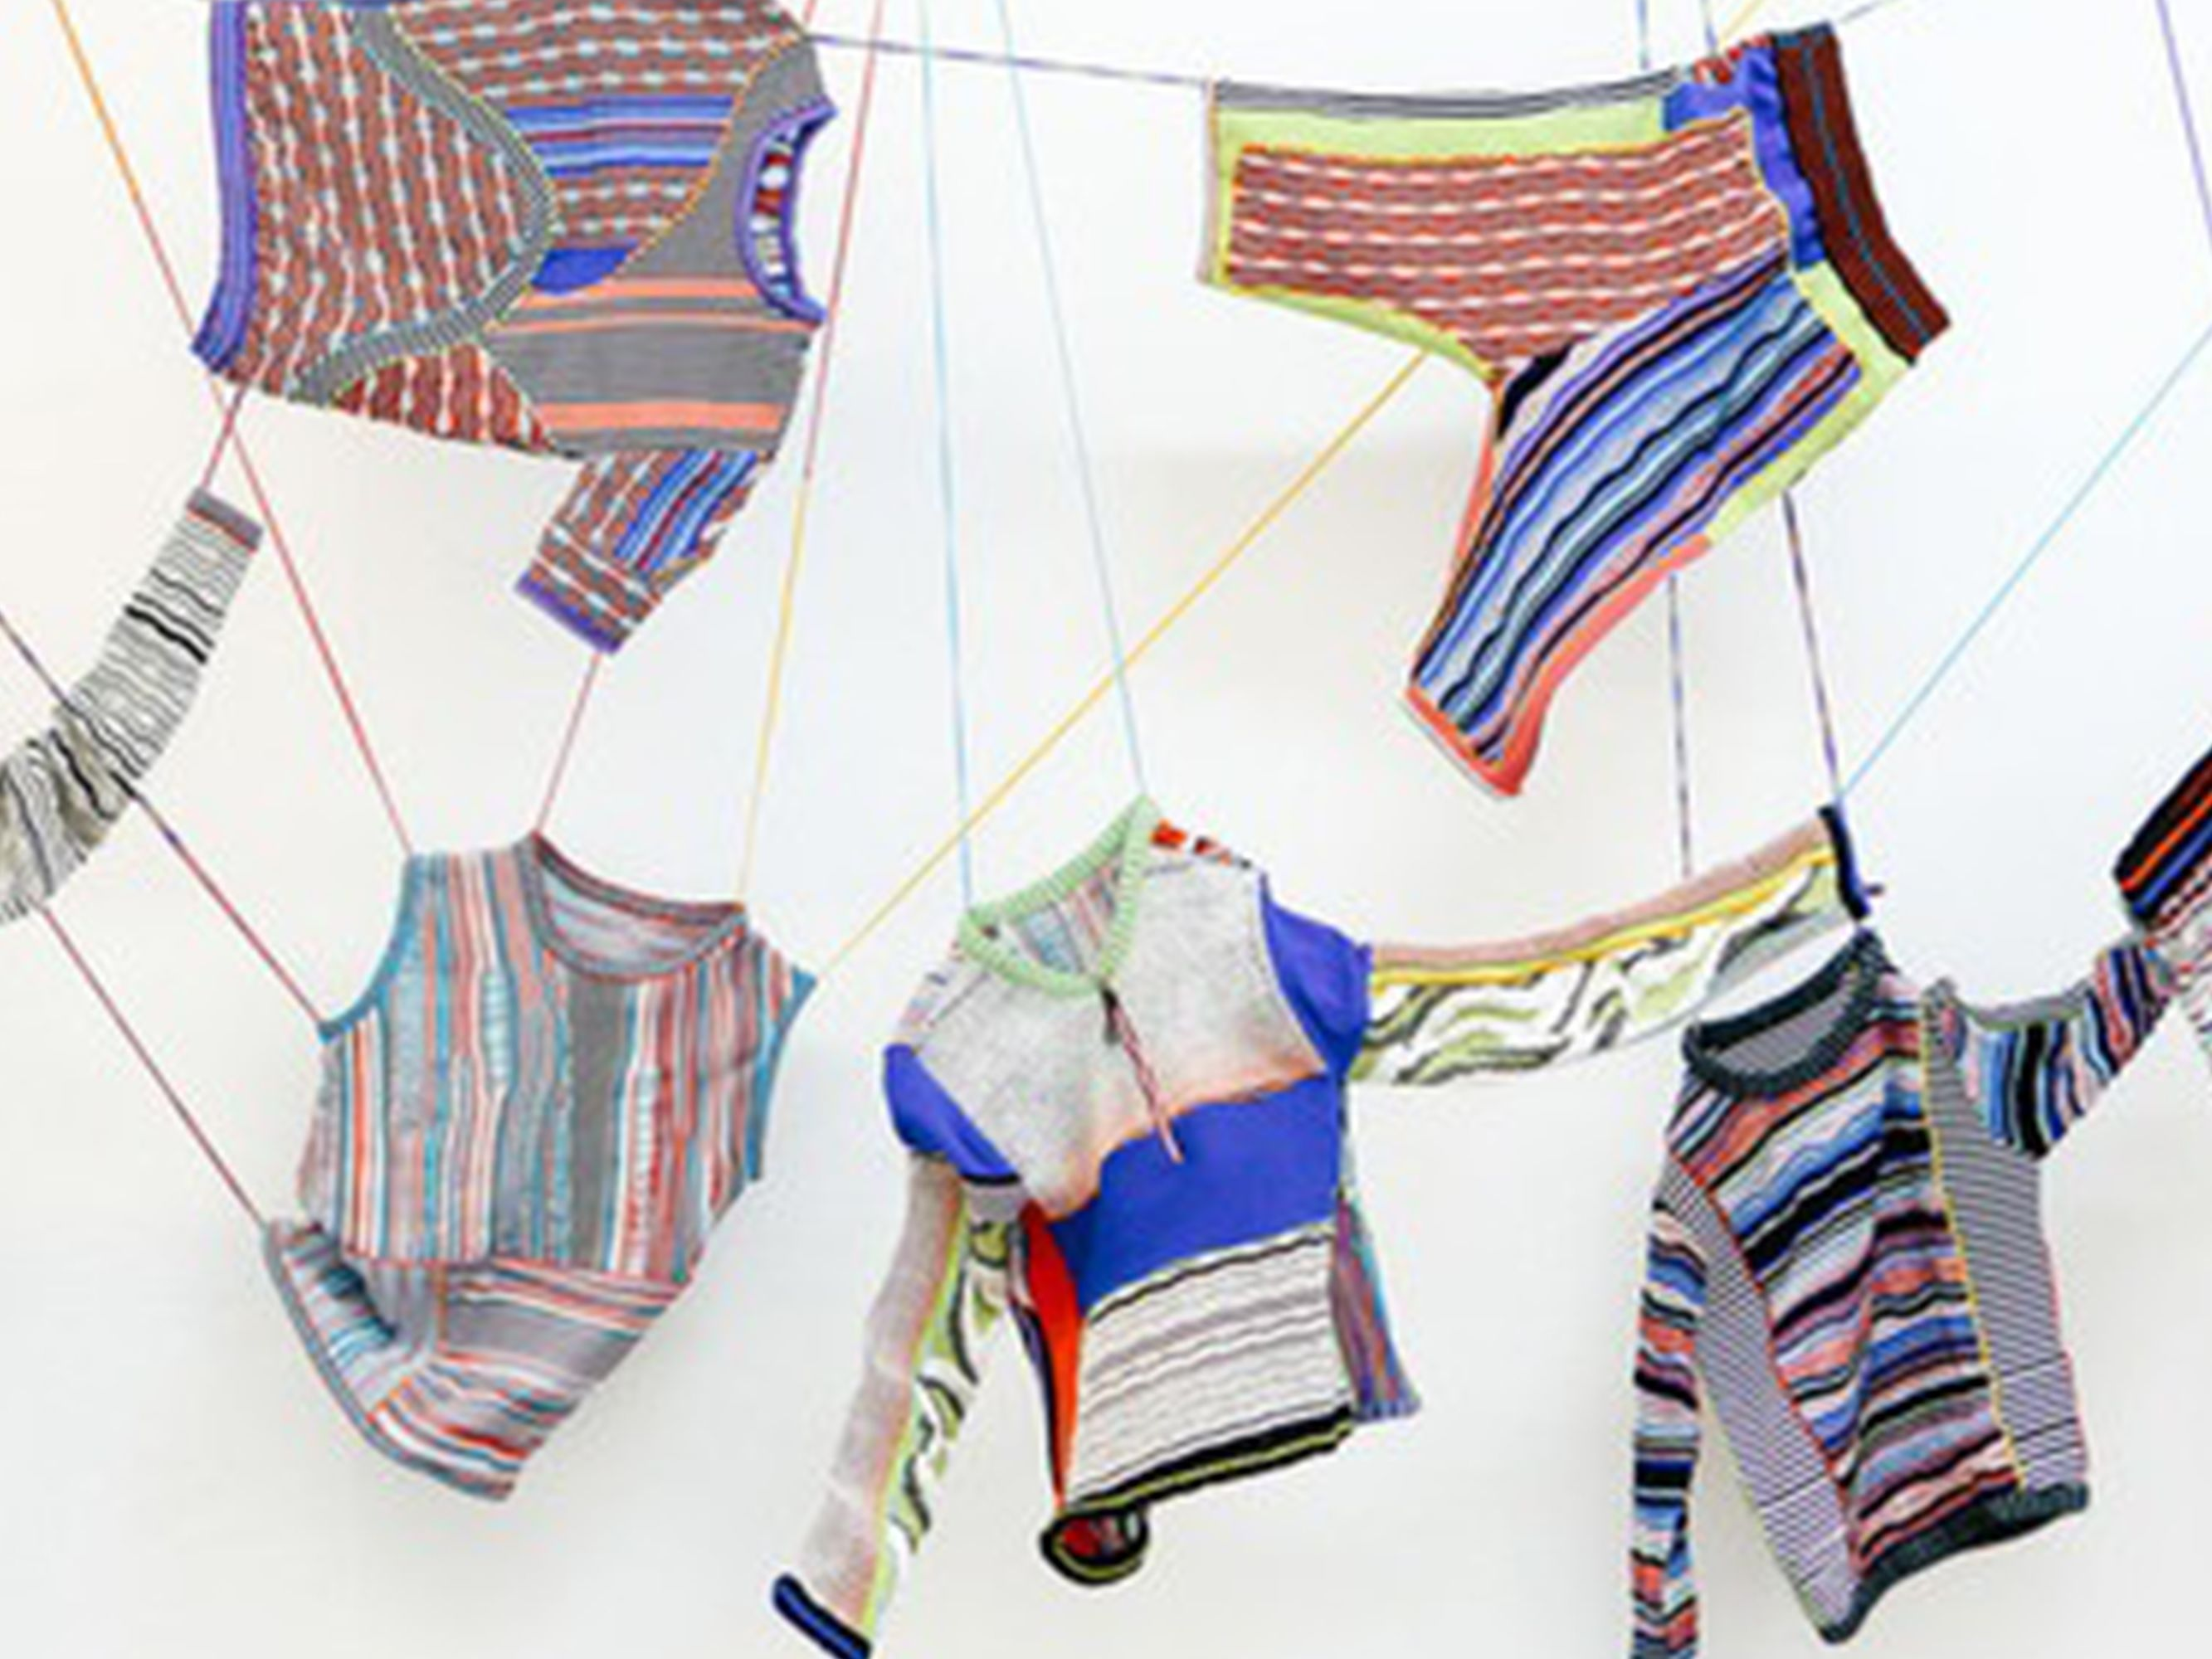 Art installation of clothes